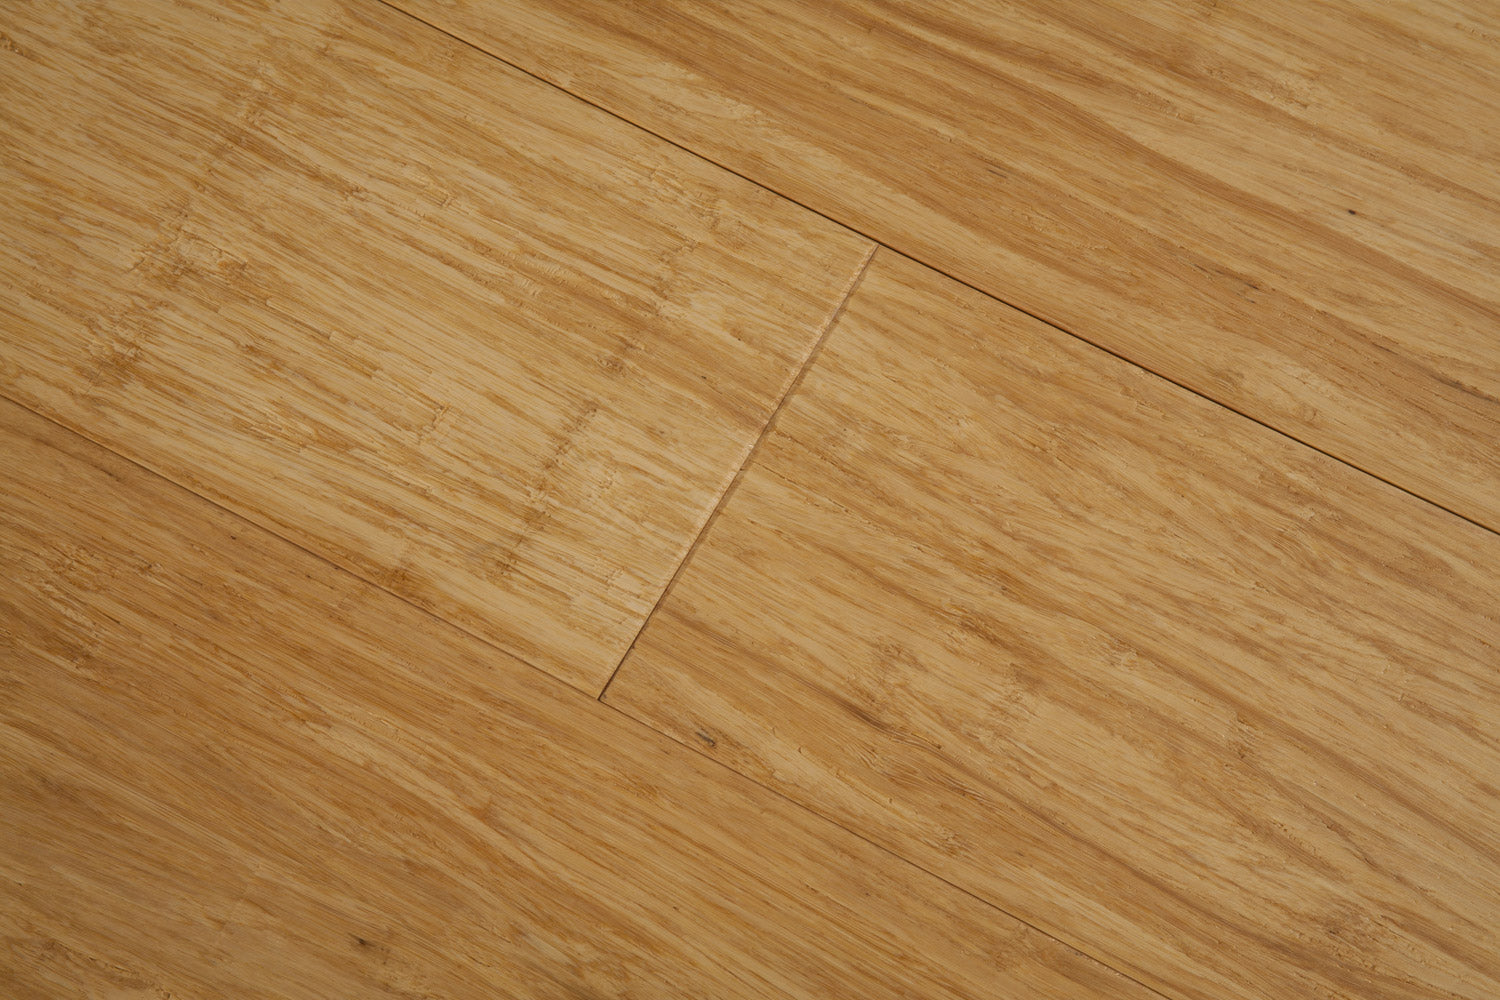 by bamboo morning n sch x xd floor carbonized pin star strand flooring